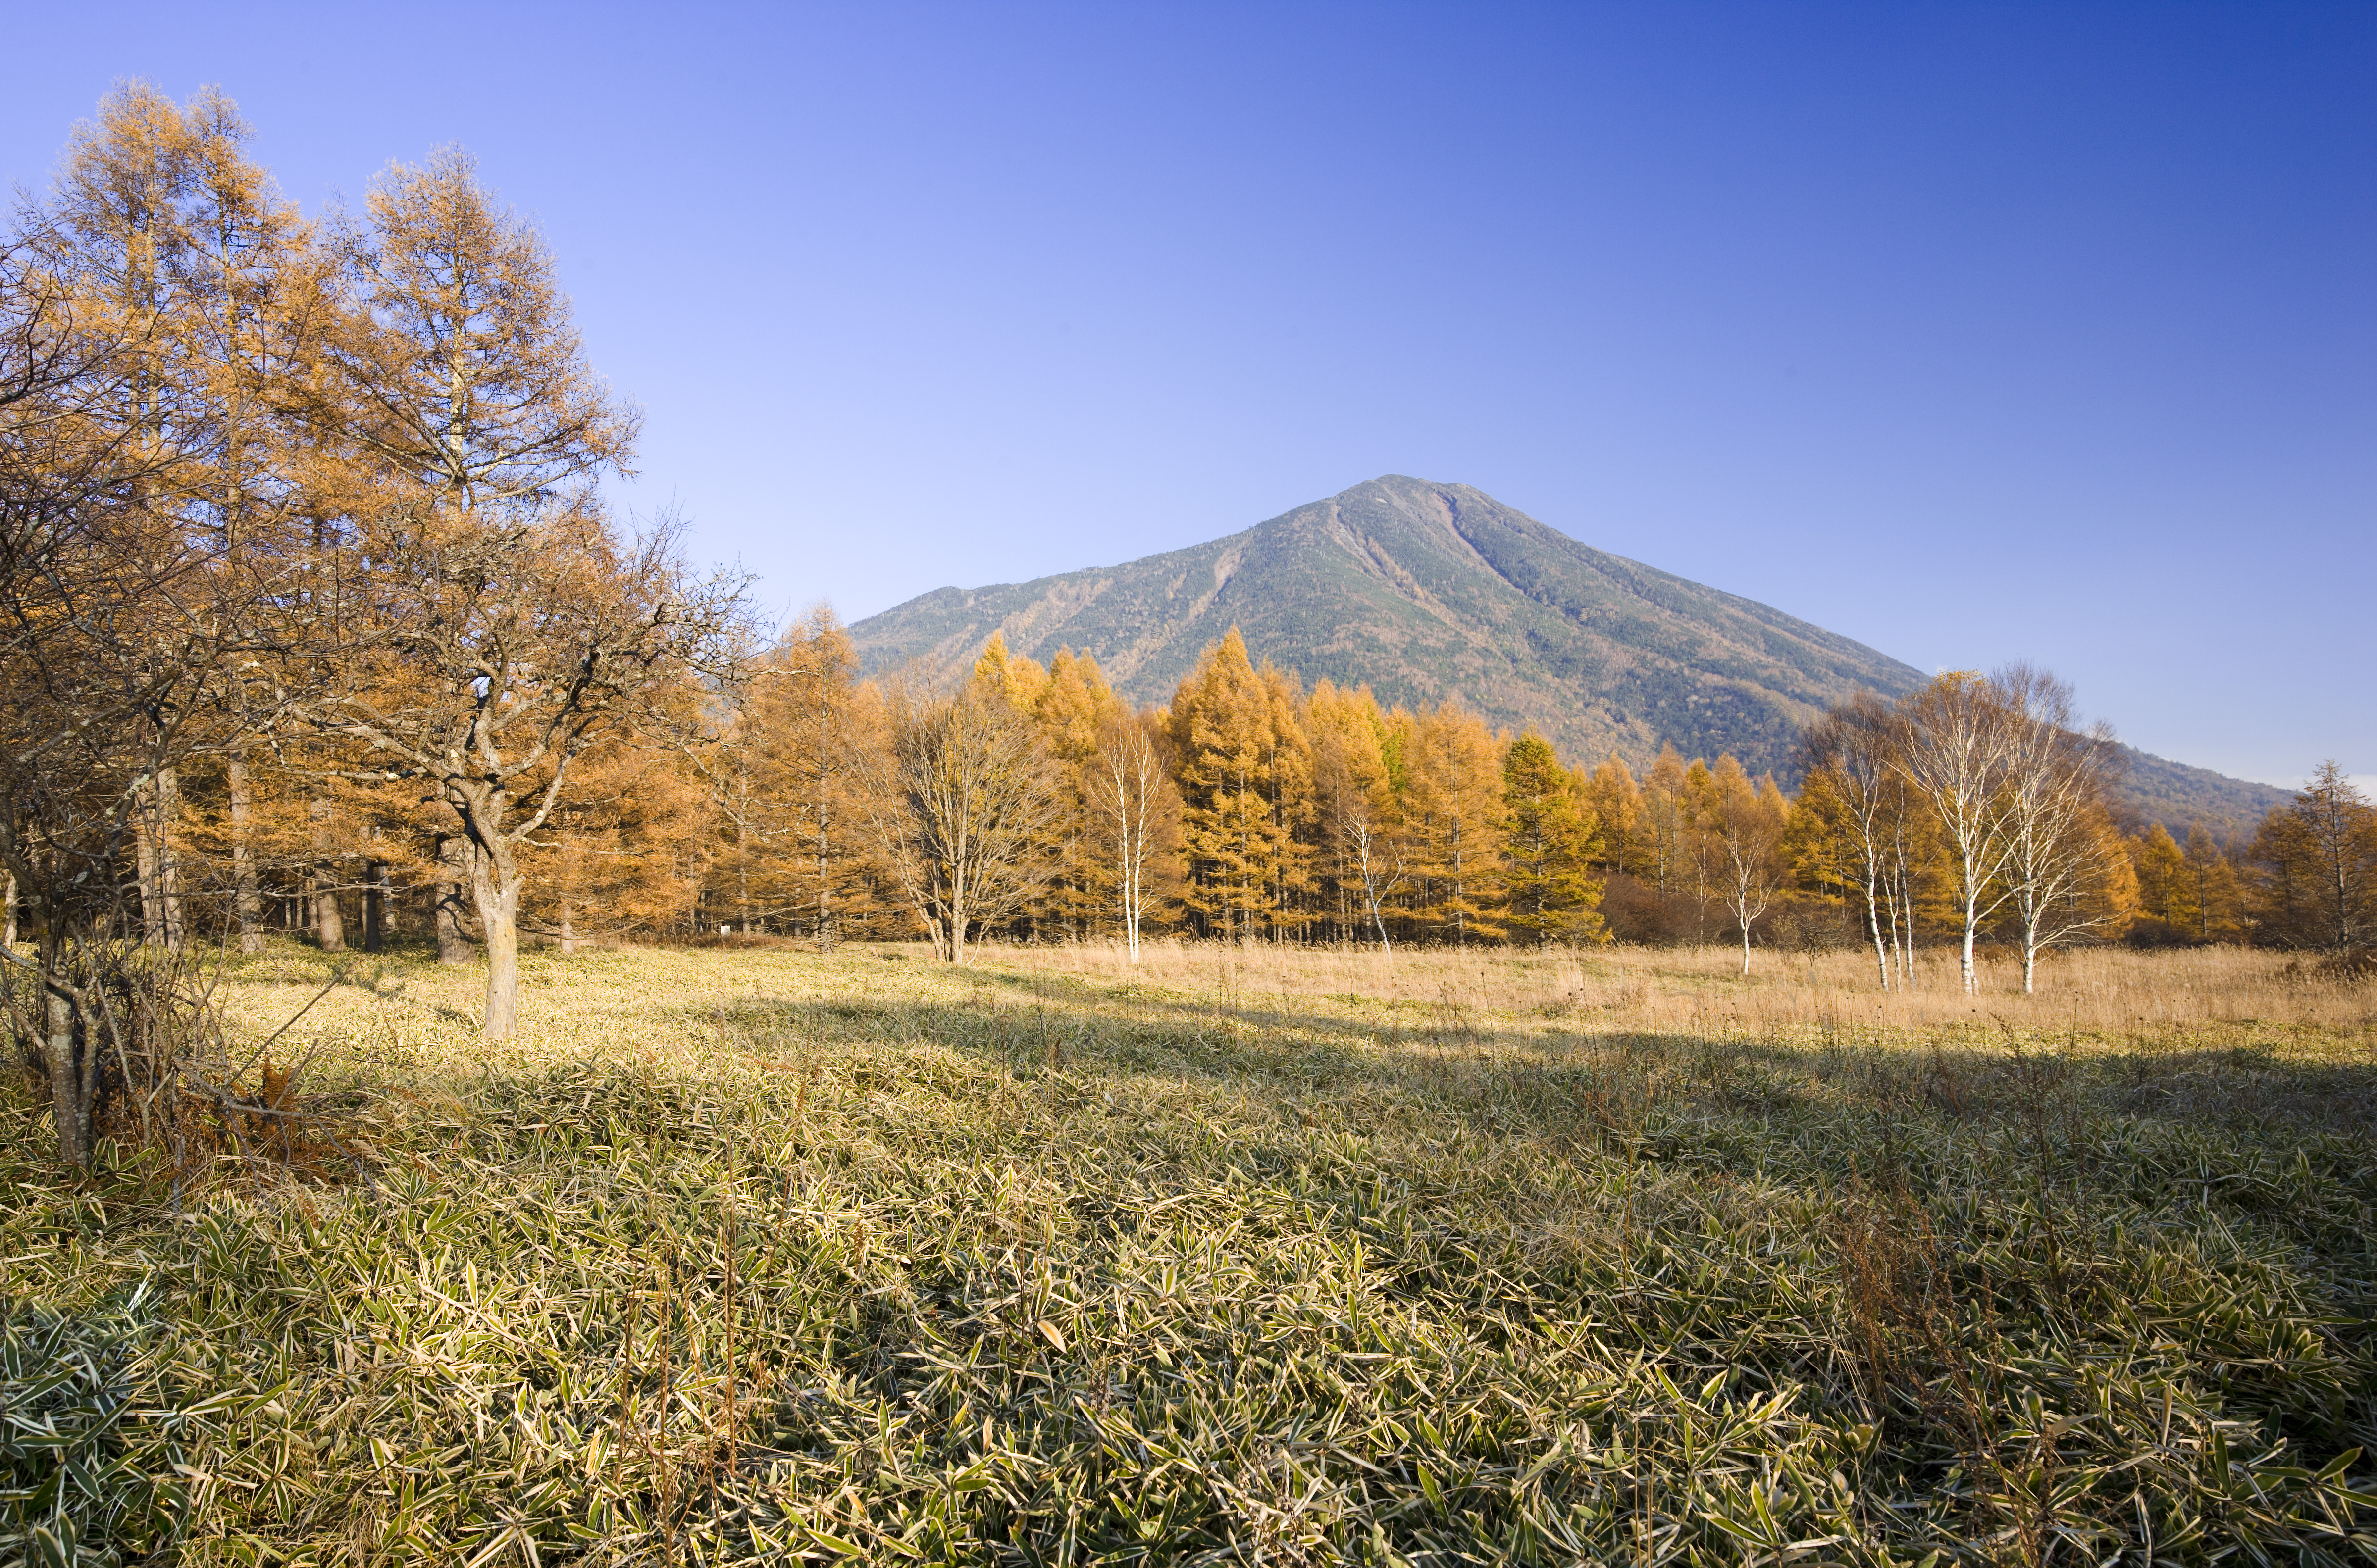 photo,material,free,landscape,picture,stock photo,Creative Commons,Senjogahara in late fall, Bamboo grass, Colored leaves, Yellow, blue sky